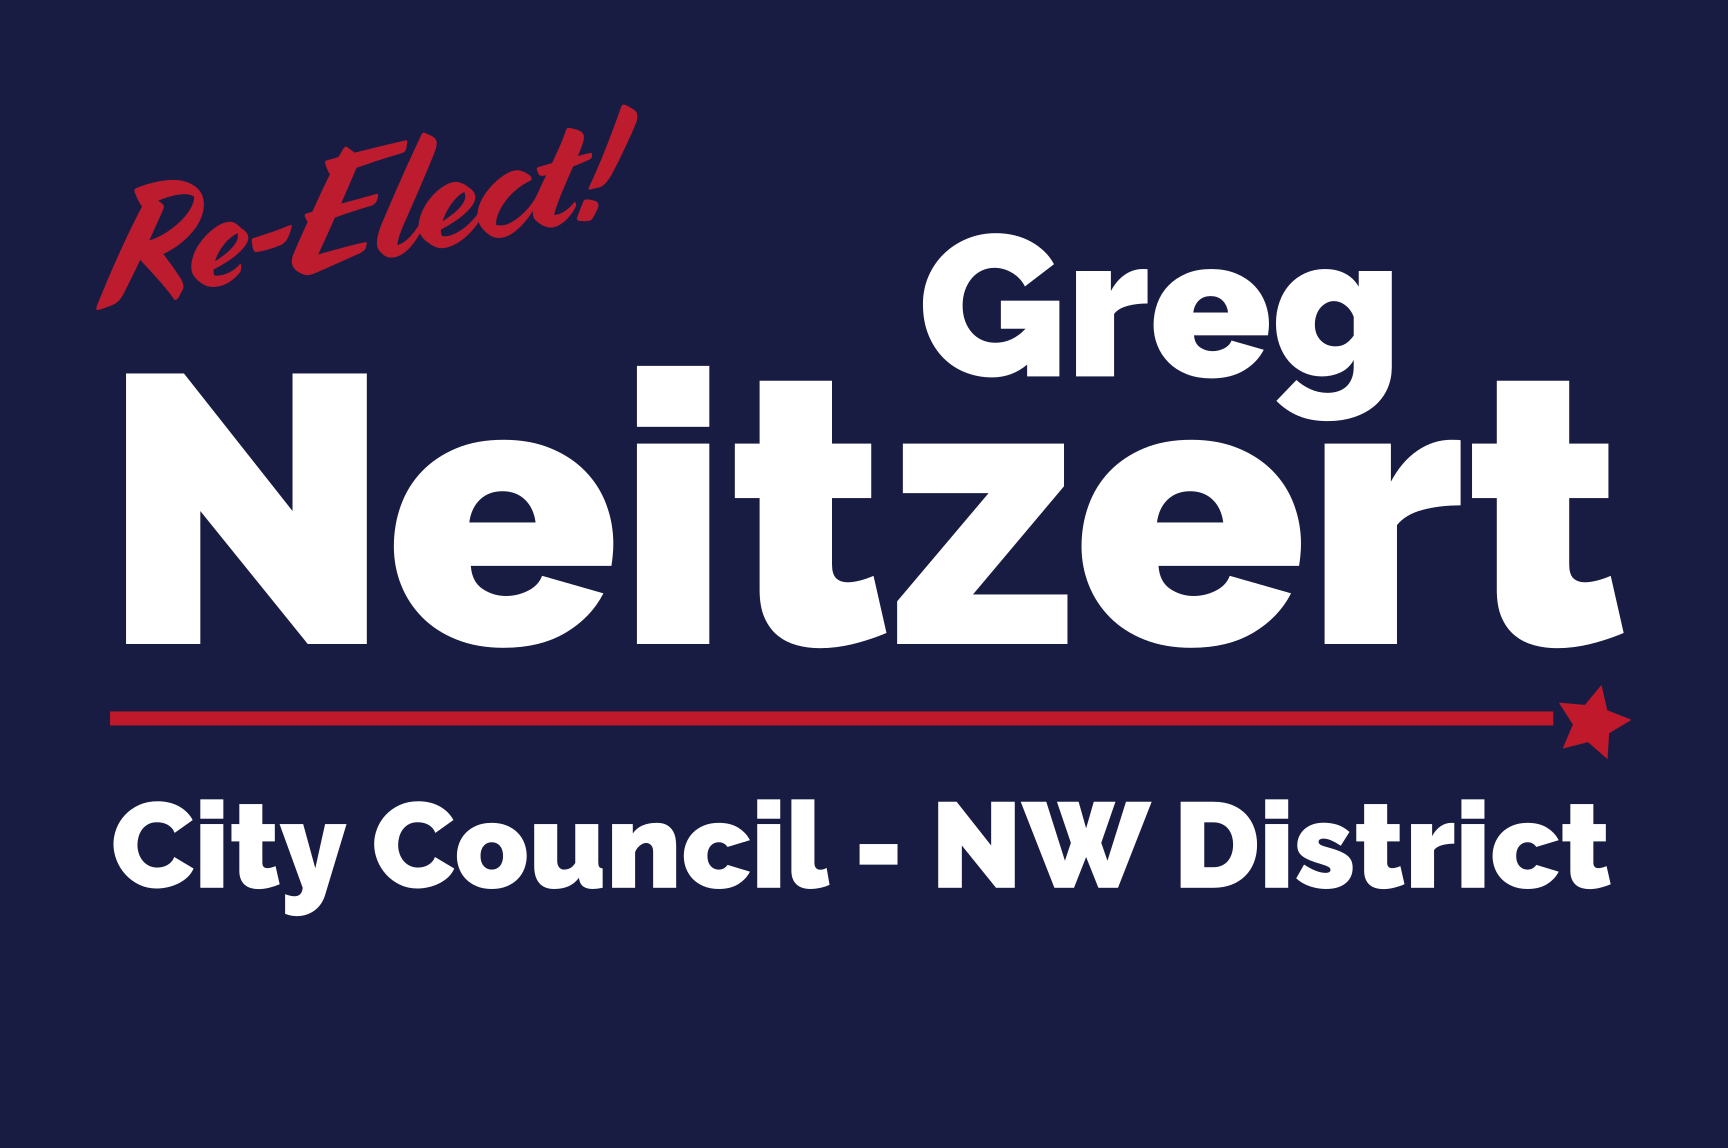 Greg Neitzert for City Council: General Fund